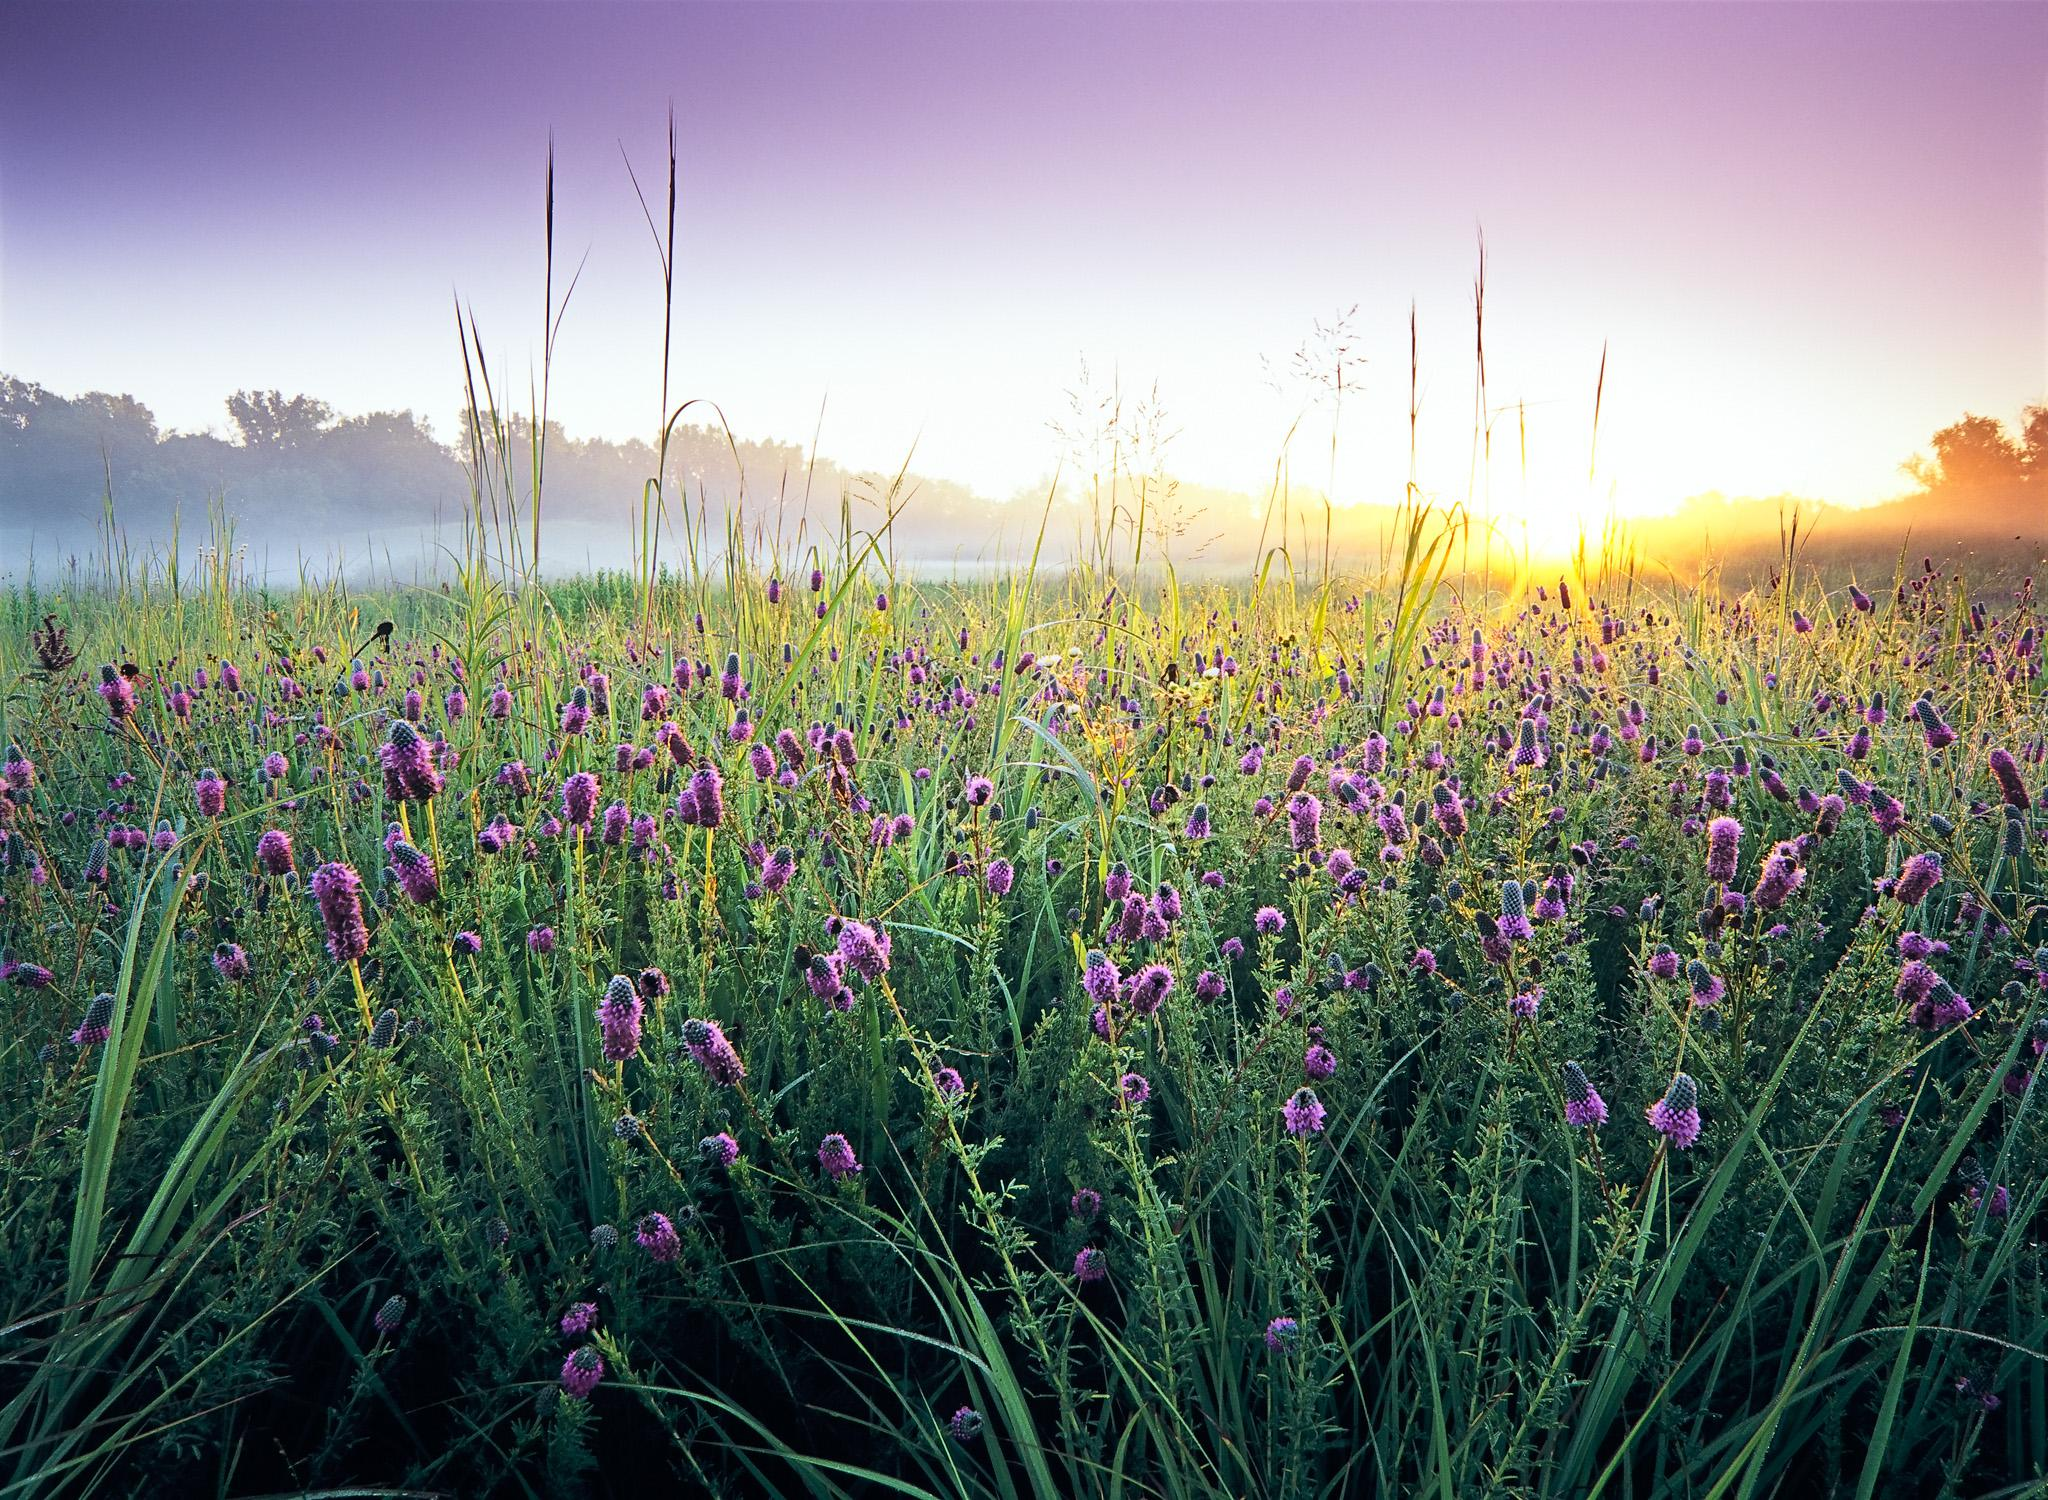 The morning sun breaks the early fog rising above the prairie at Bluff Spring Fen in Elgin, Illinois.